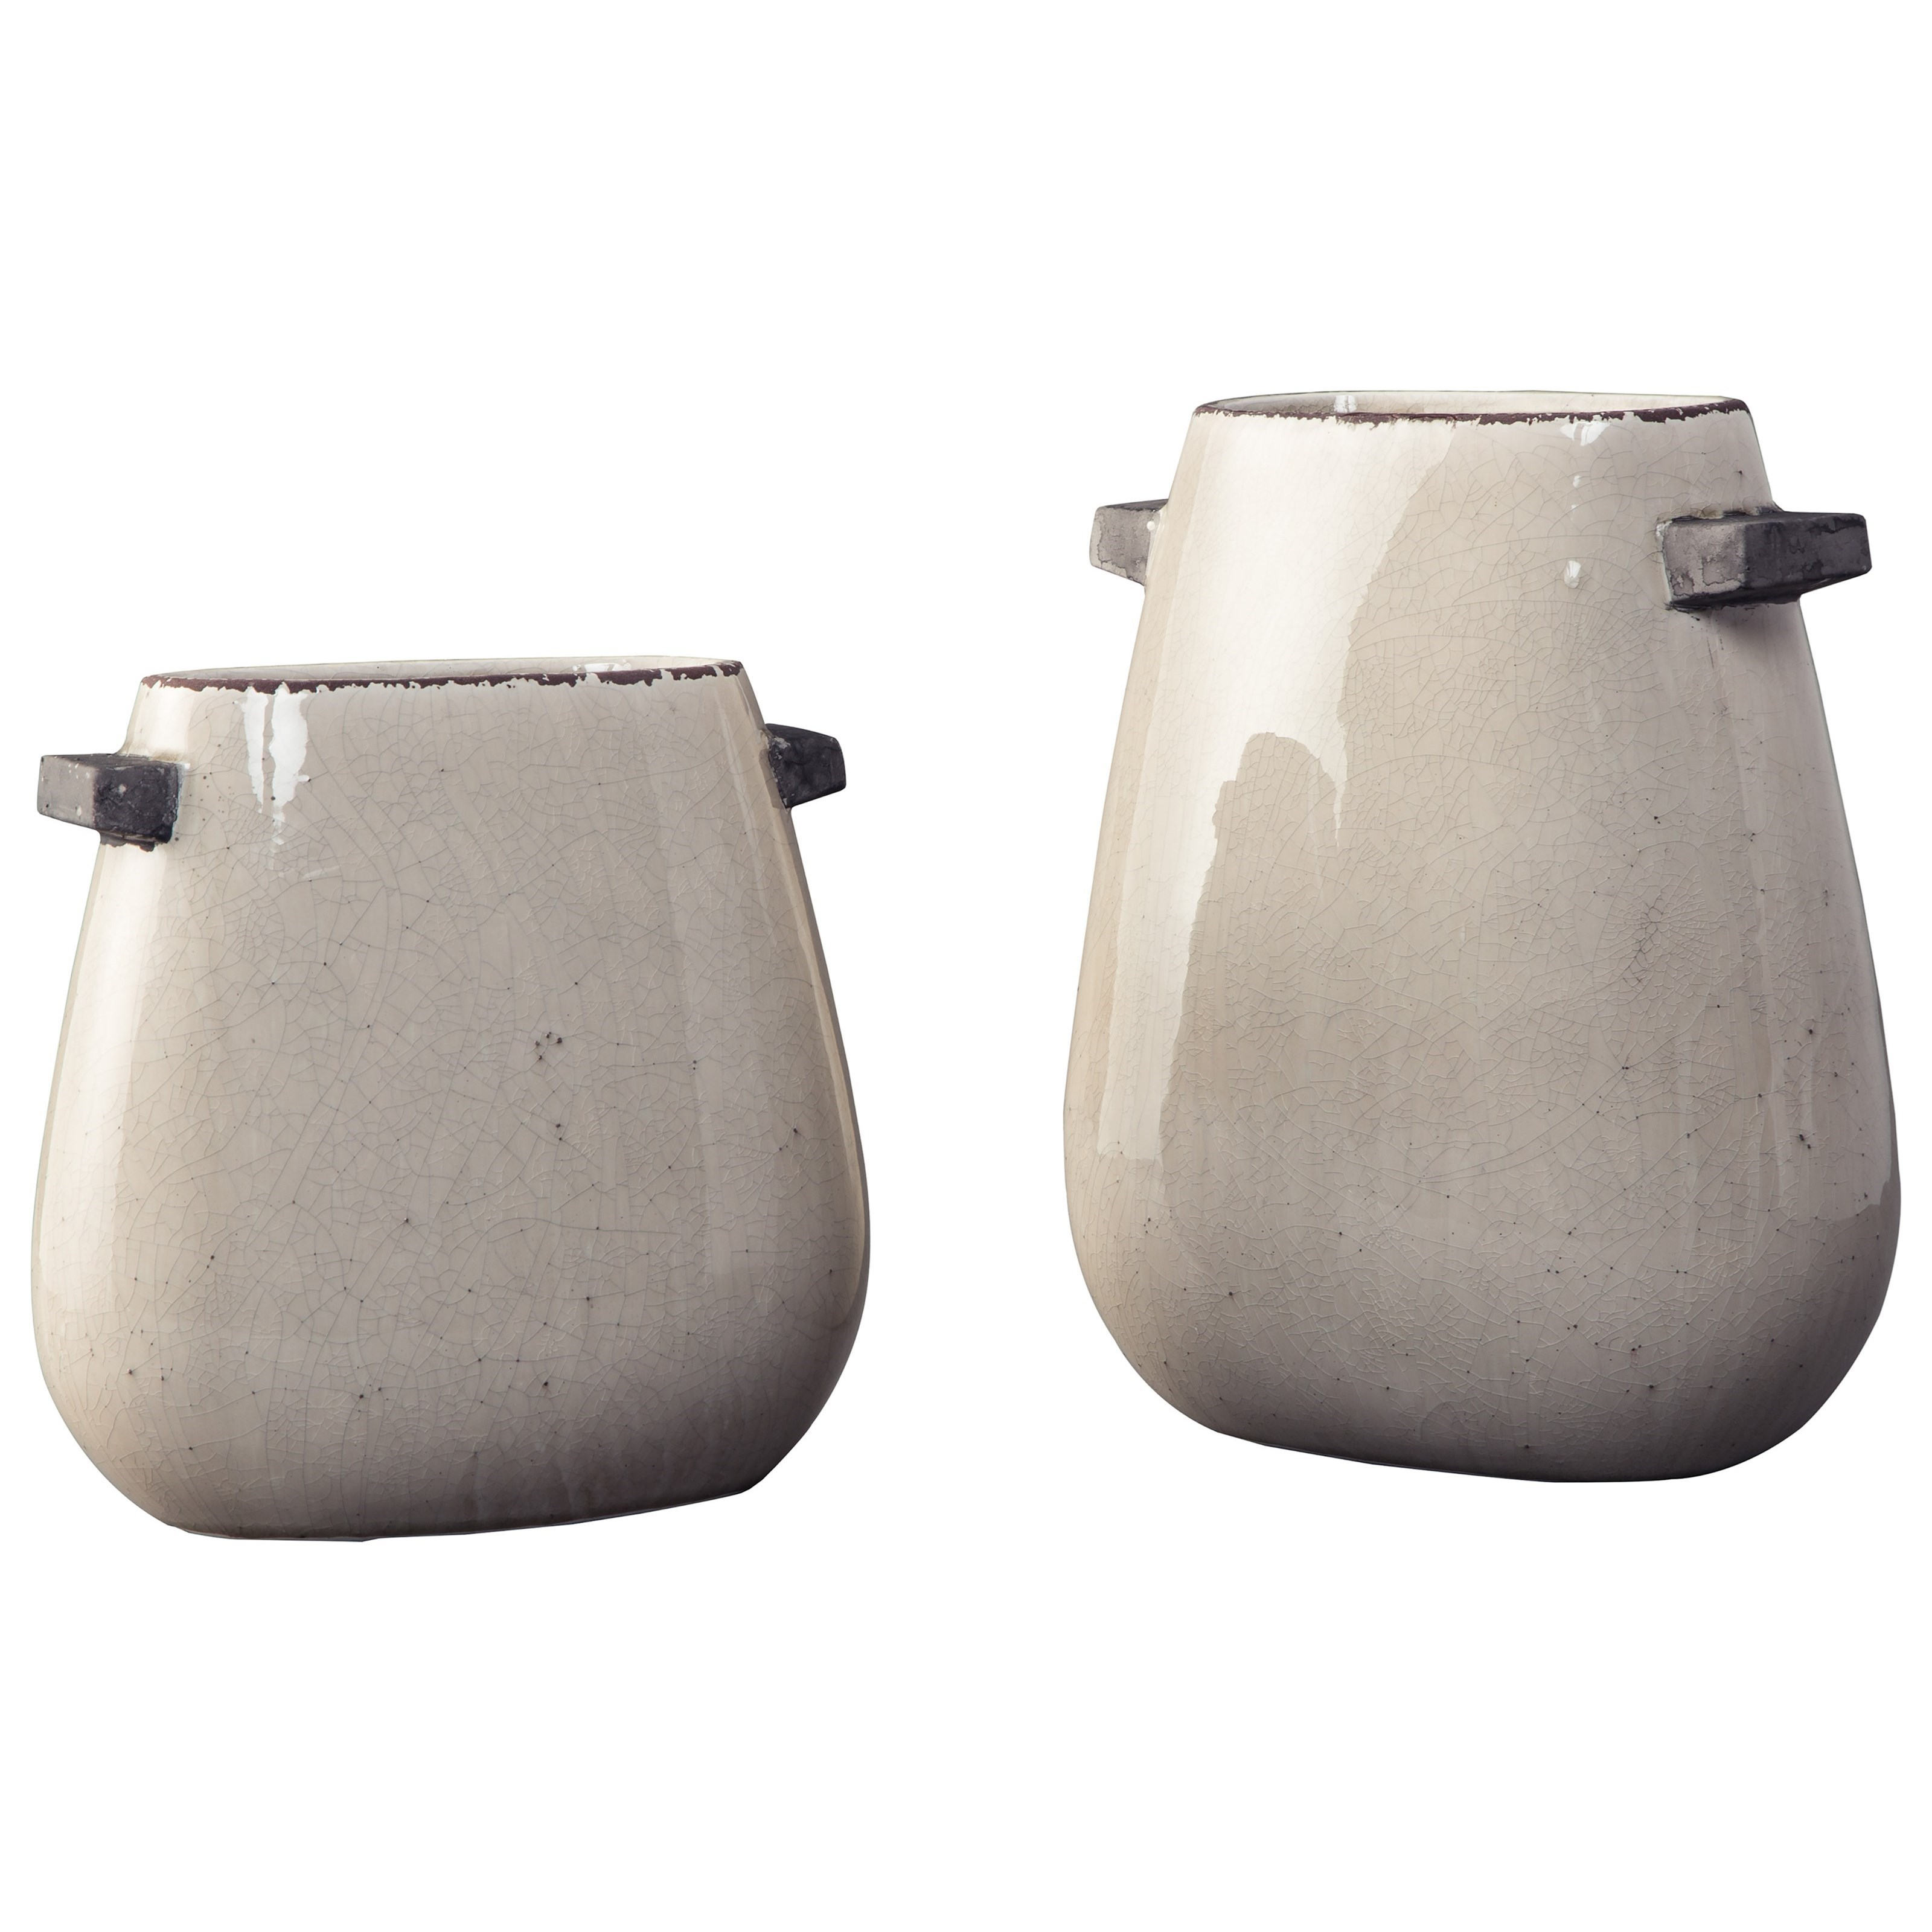 Diah Tan Vase Set